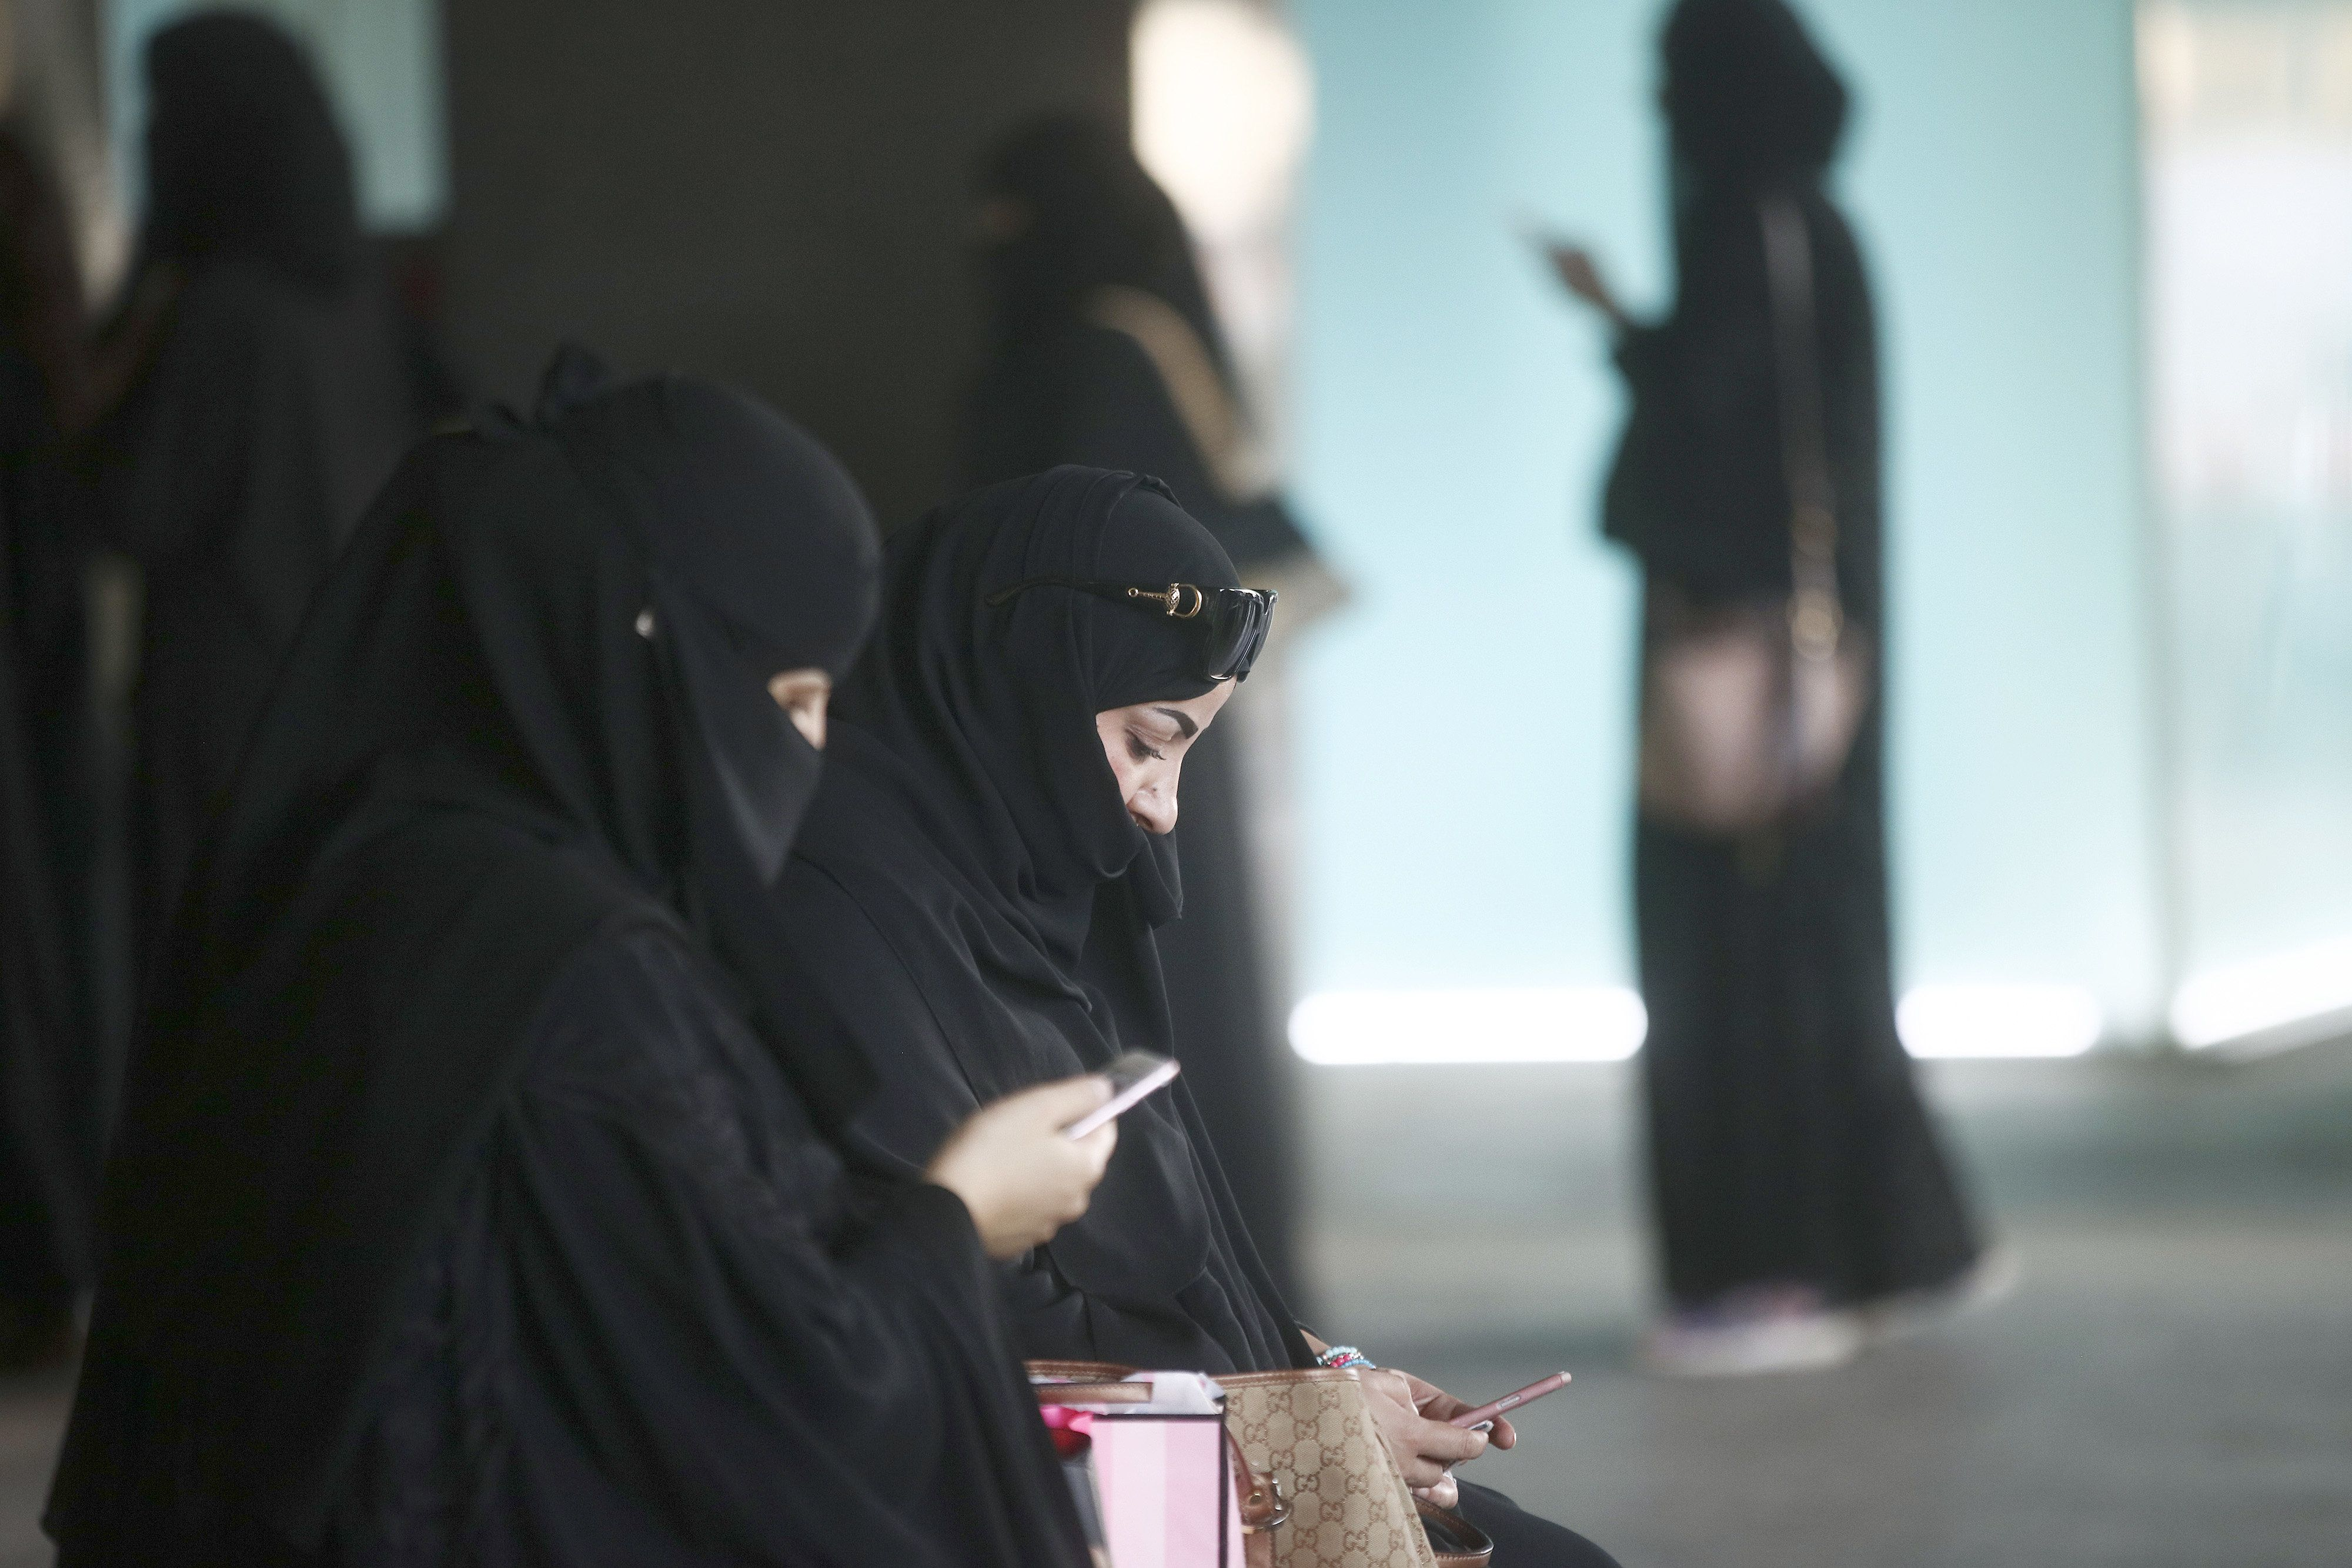 New Saudi Arabia Law Requires Women To Be Notified If Their Husbands Divorce